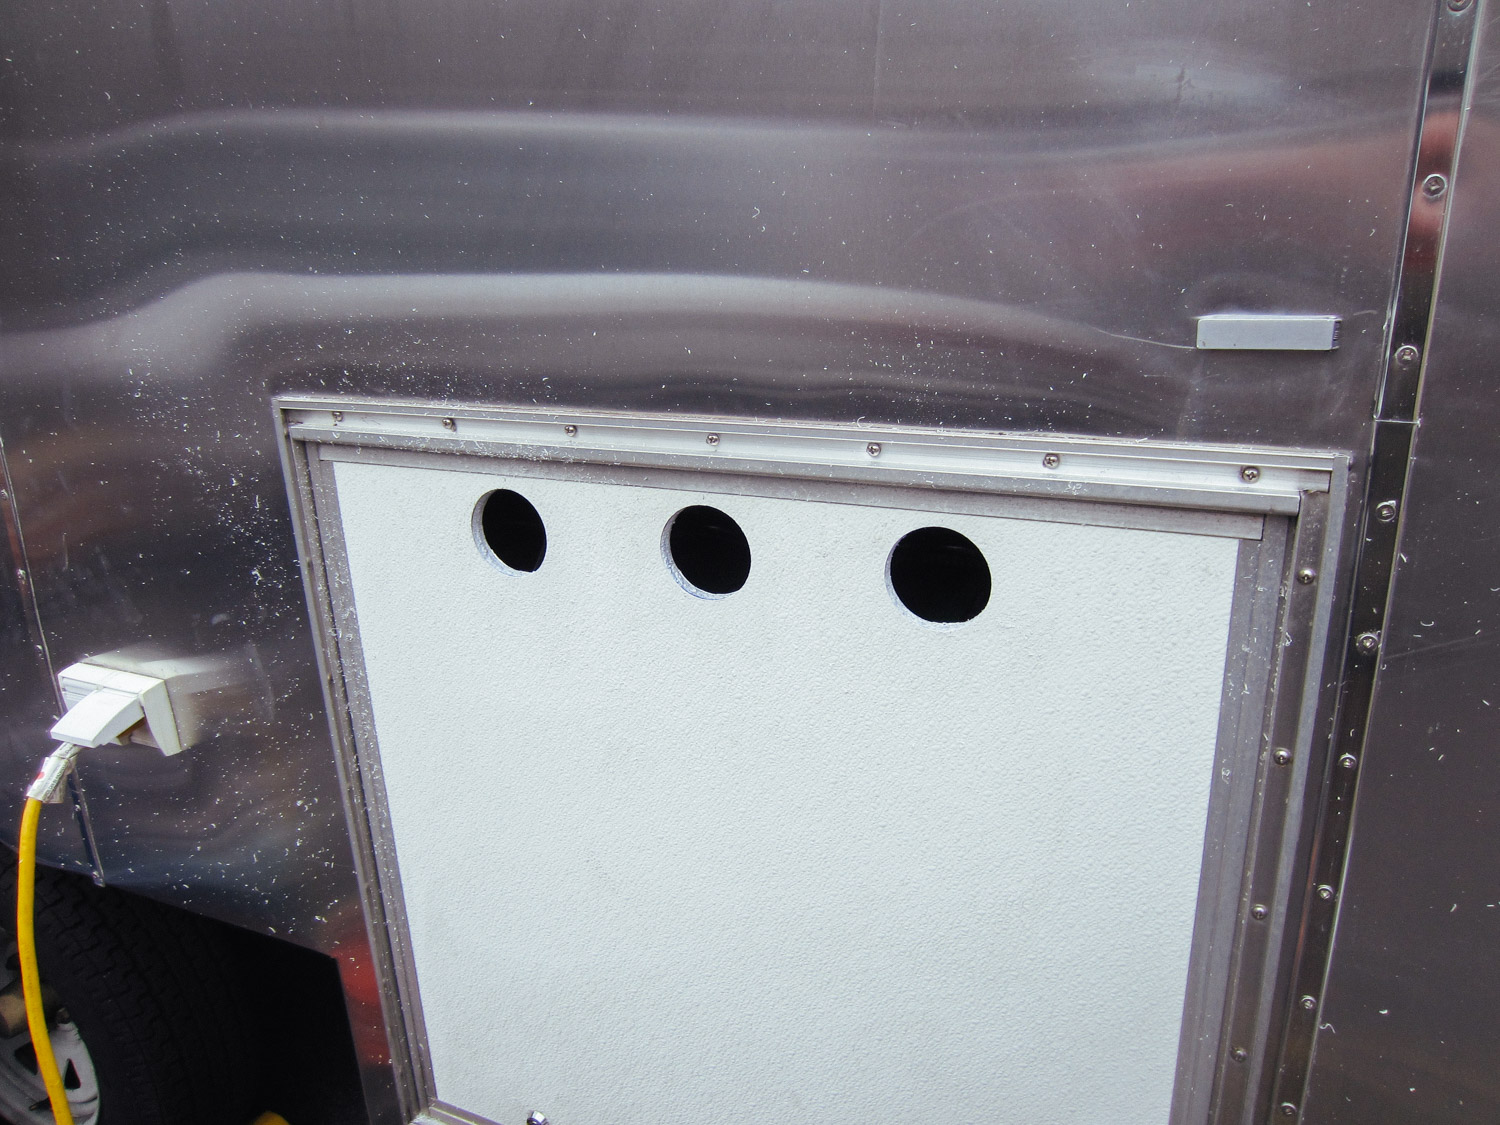 We drilled vent holes into the compartment door to keep the batteries cool and vent battery gases.